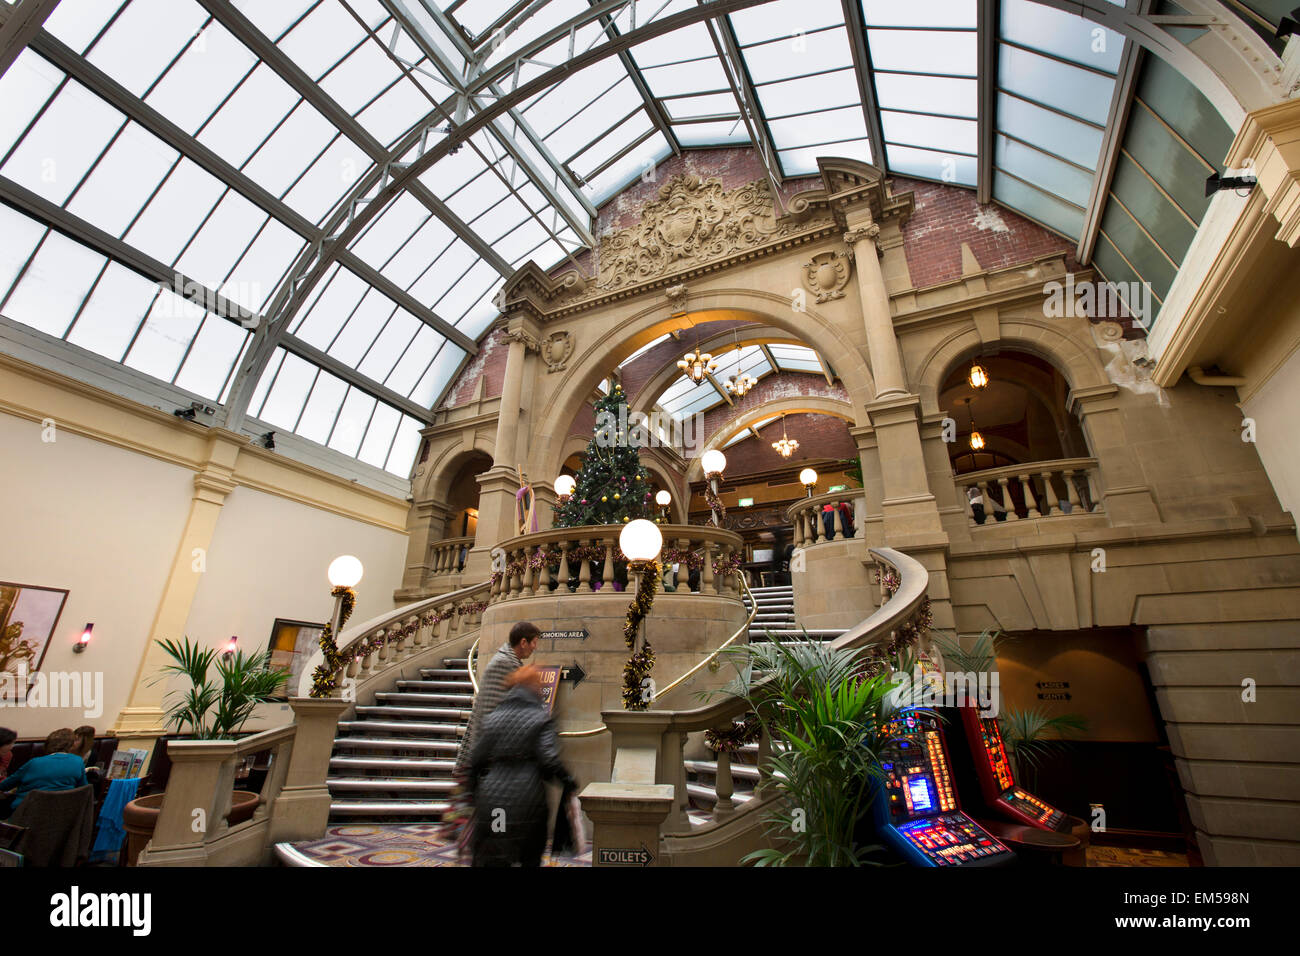 UK, England, Yorkshire, Harrogate, Wetherspoons original Winter Gardens staircase and glazed roof - Stock Image